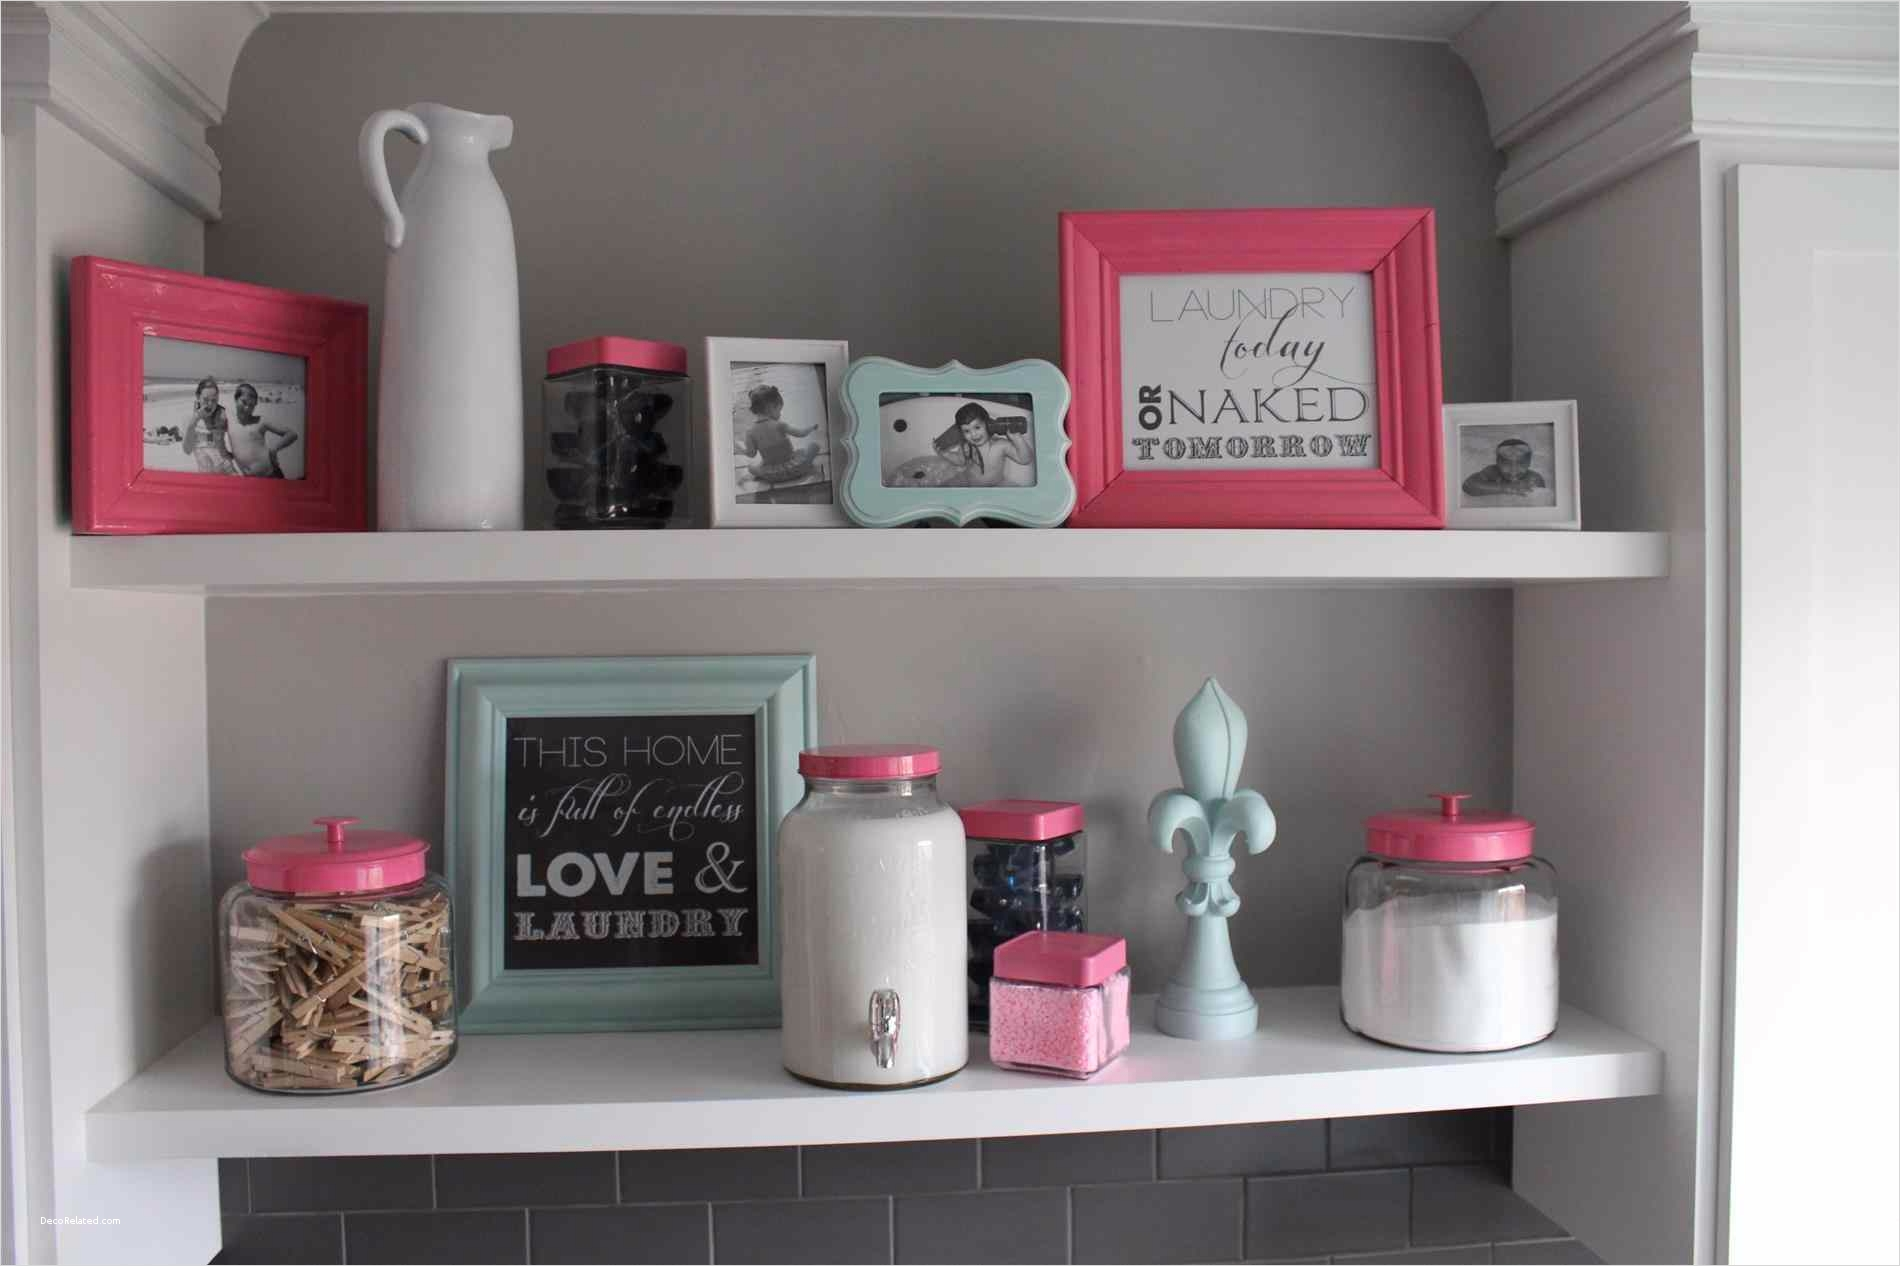 Laundry Room Wall Art Decor Layout 35 formidable Laundry Room Wall Decor Pinterest ating A Ellie Bean Design In Simple Small 9